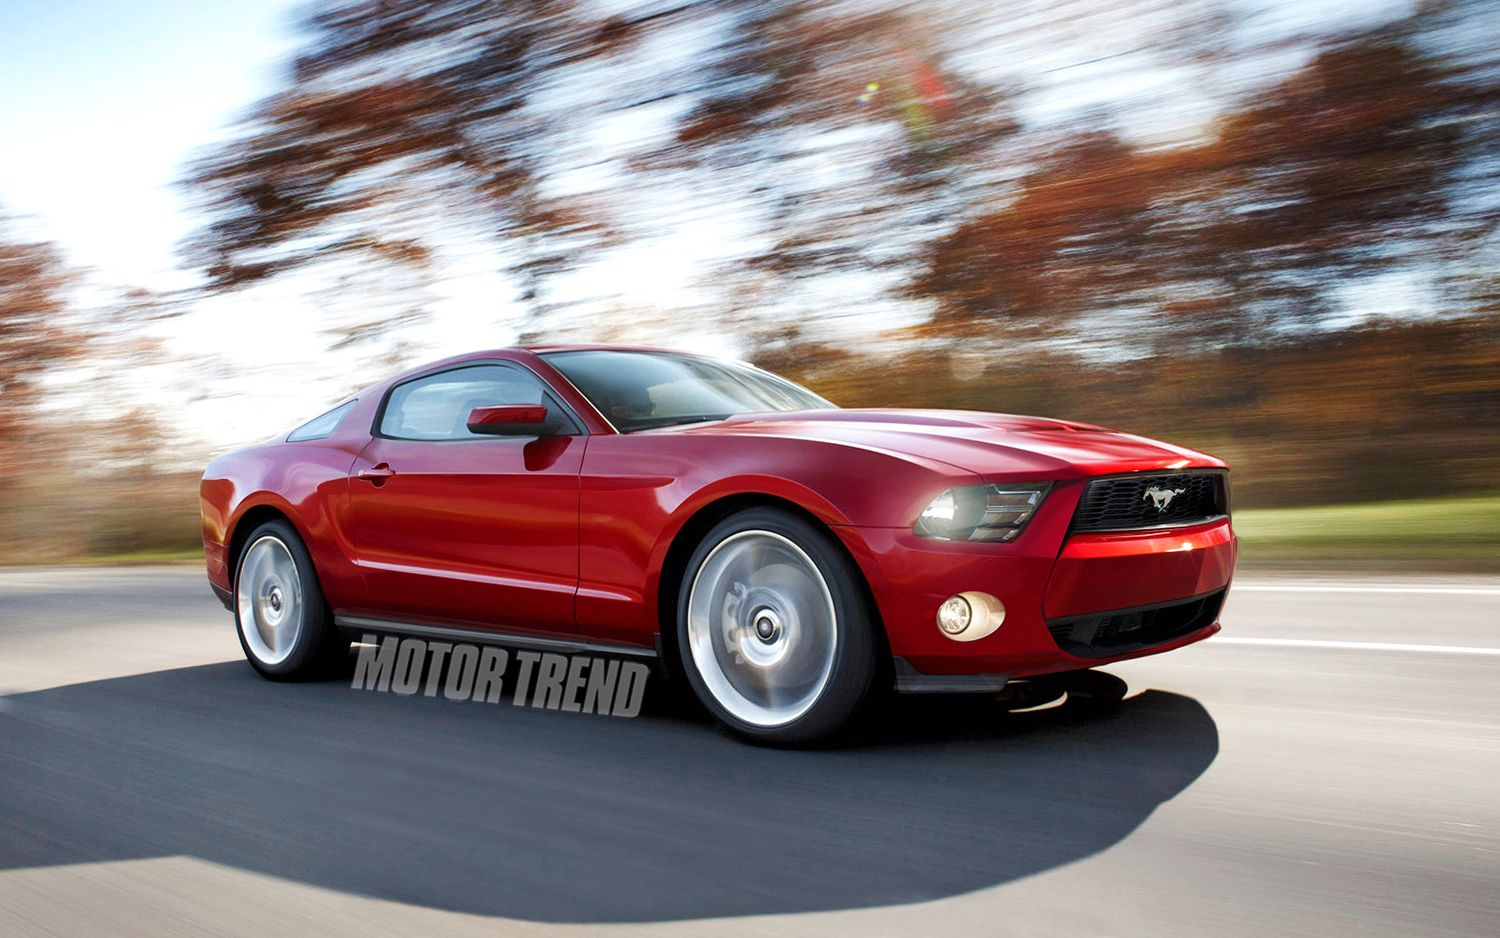 2015 Ford Mustang Front Three Quarter Illustration1